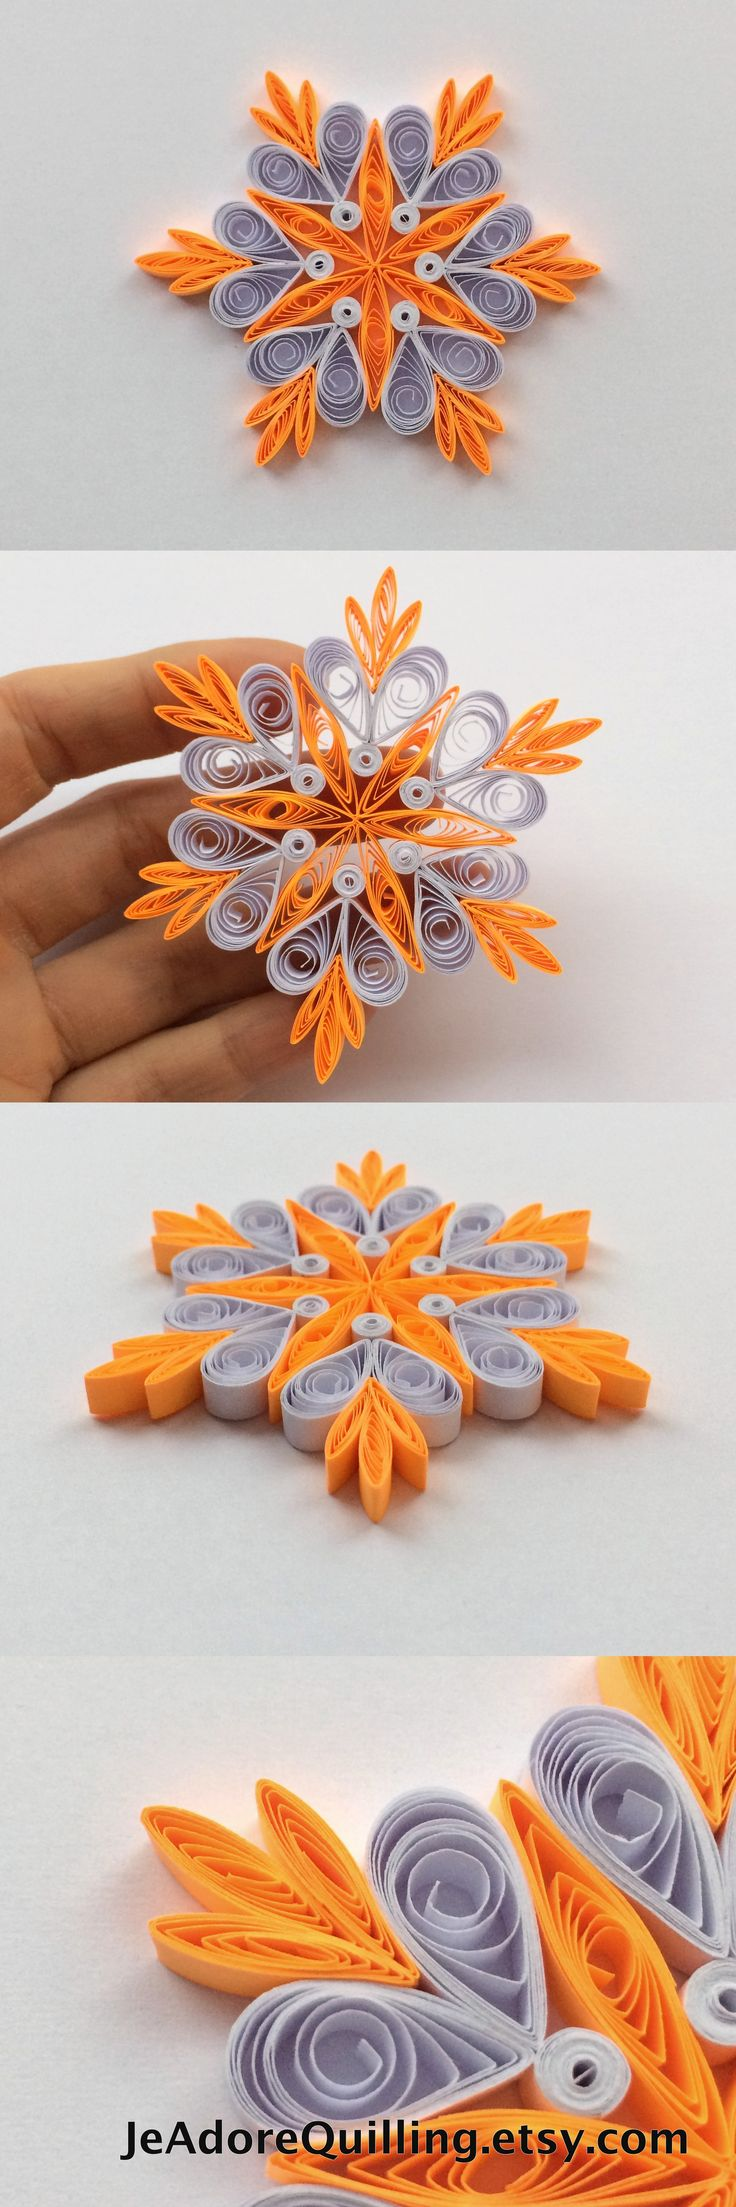 Snowflakes Neon Orange White Christmas Tree Decor Winter Ornaments Gift Toppers Fillers Office Corporate Paper Quilling Quilled Handmade Art